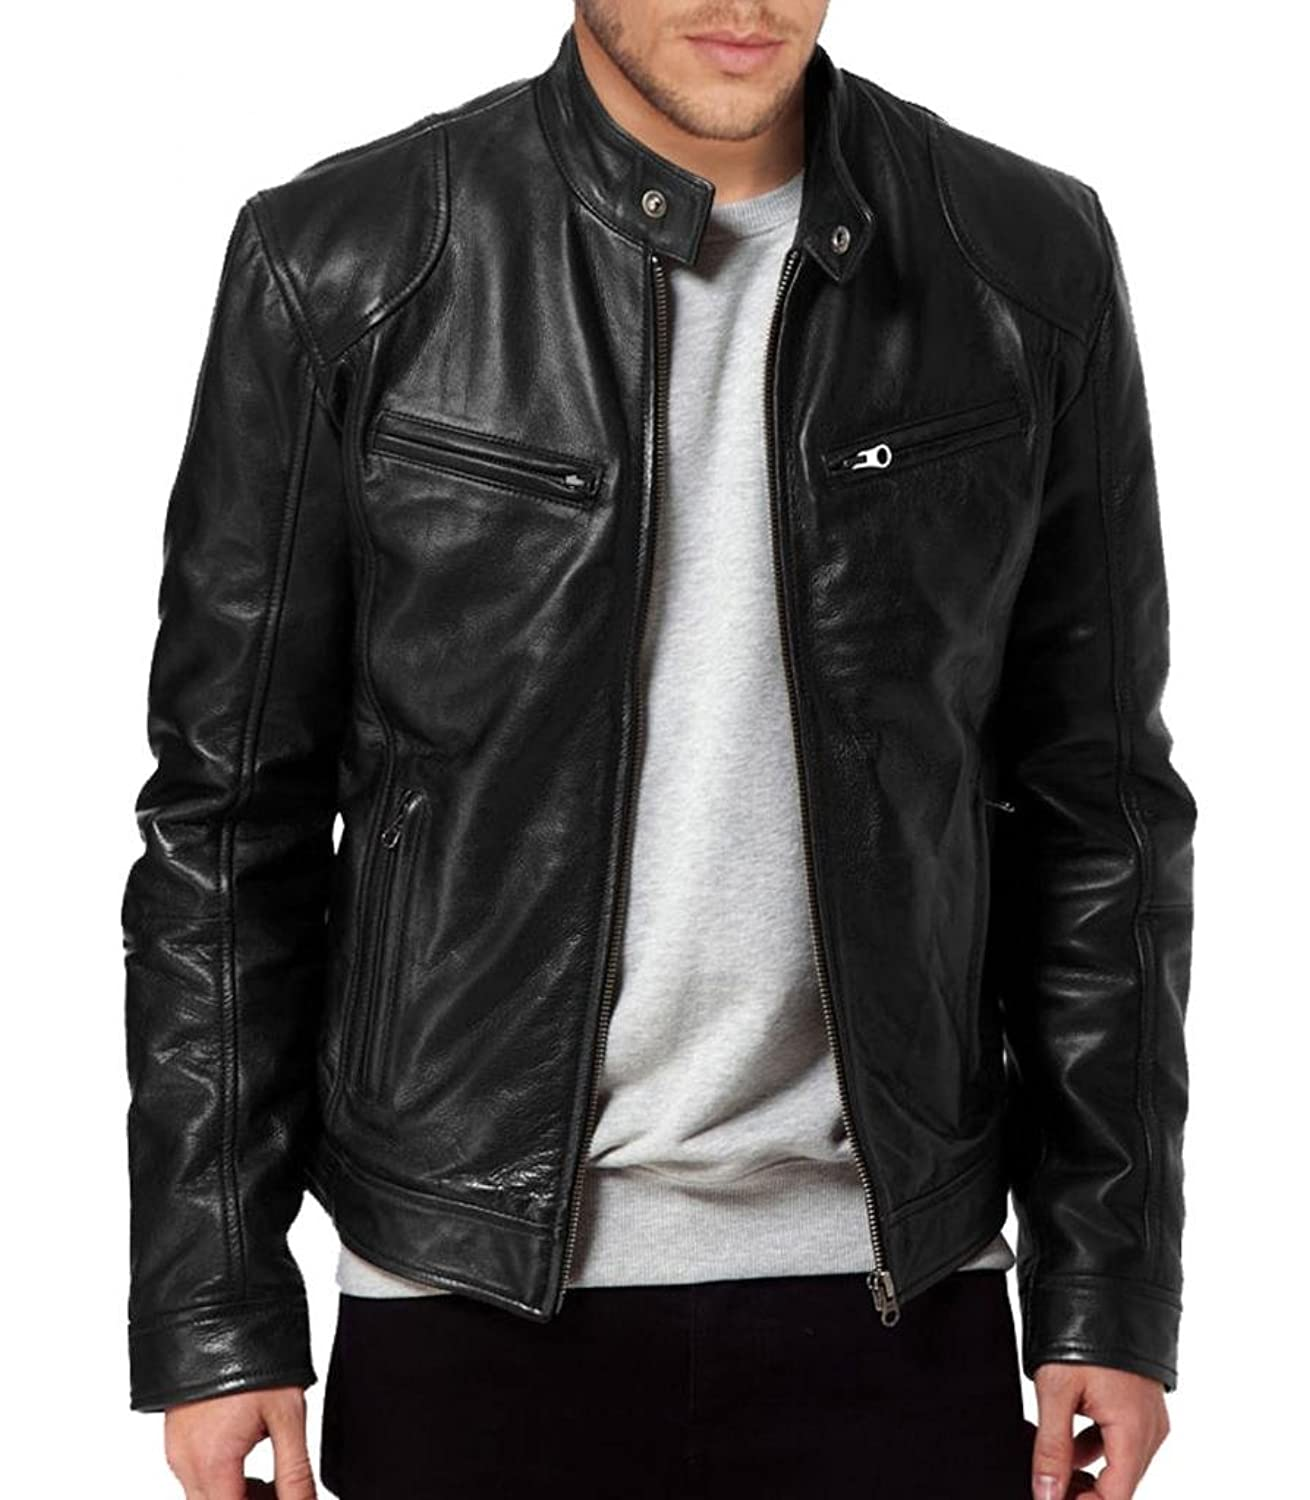 ABDys Men's Lambskin Leather jacket DKL345 Black